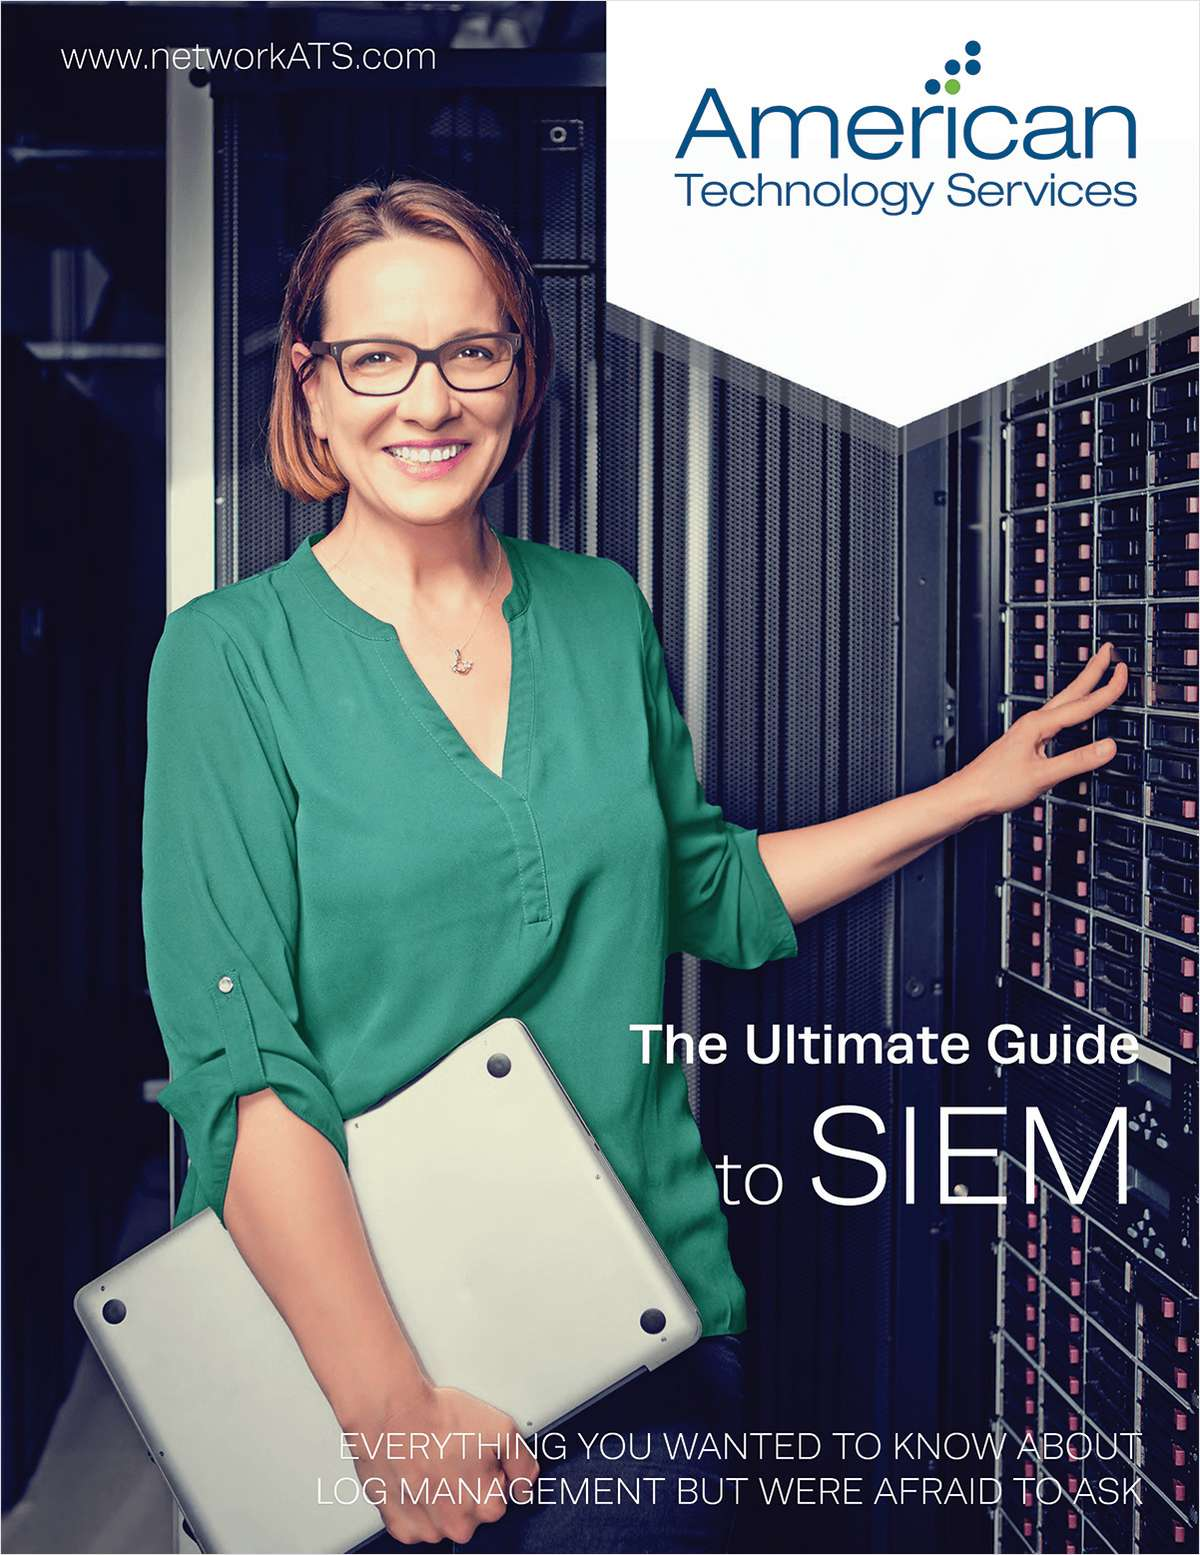 The Ultimate Guide to SIEM